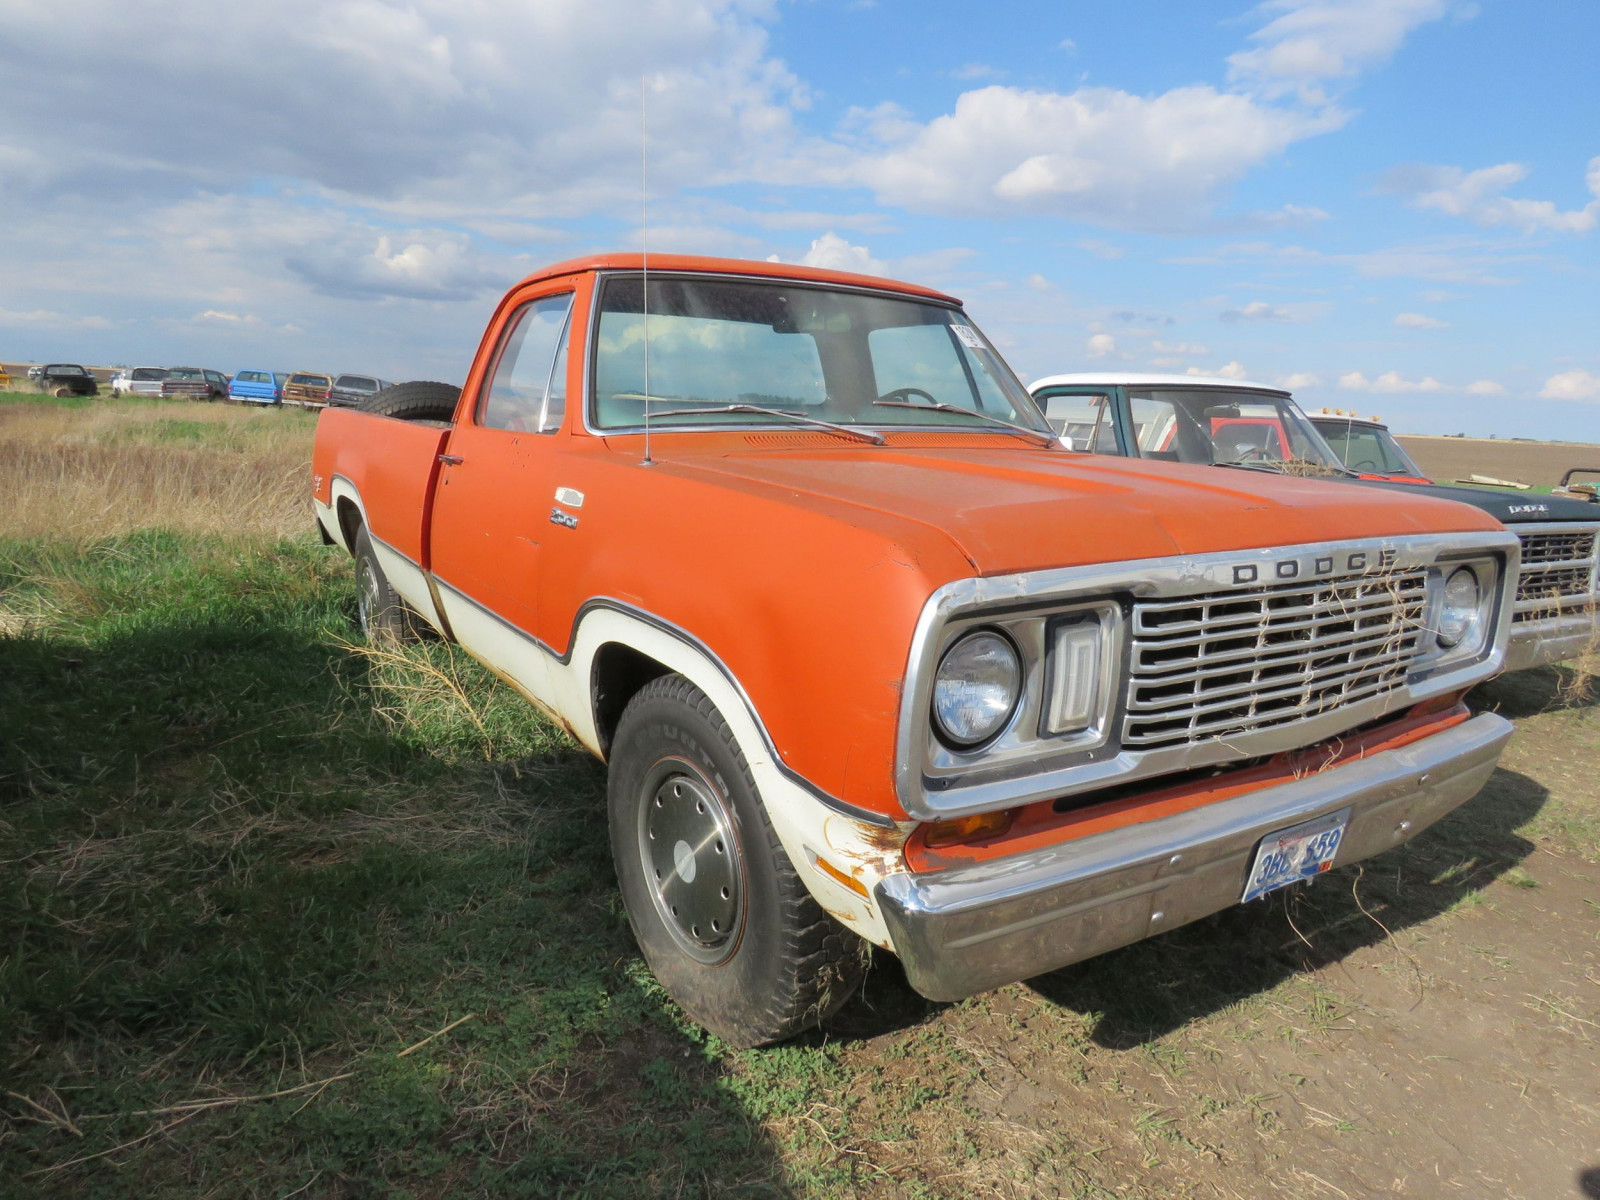 1973 Dodge D200 Pickup - Image 2